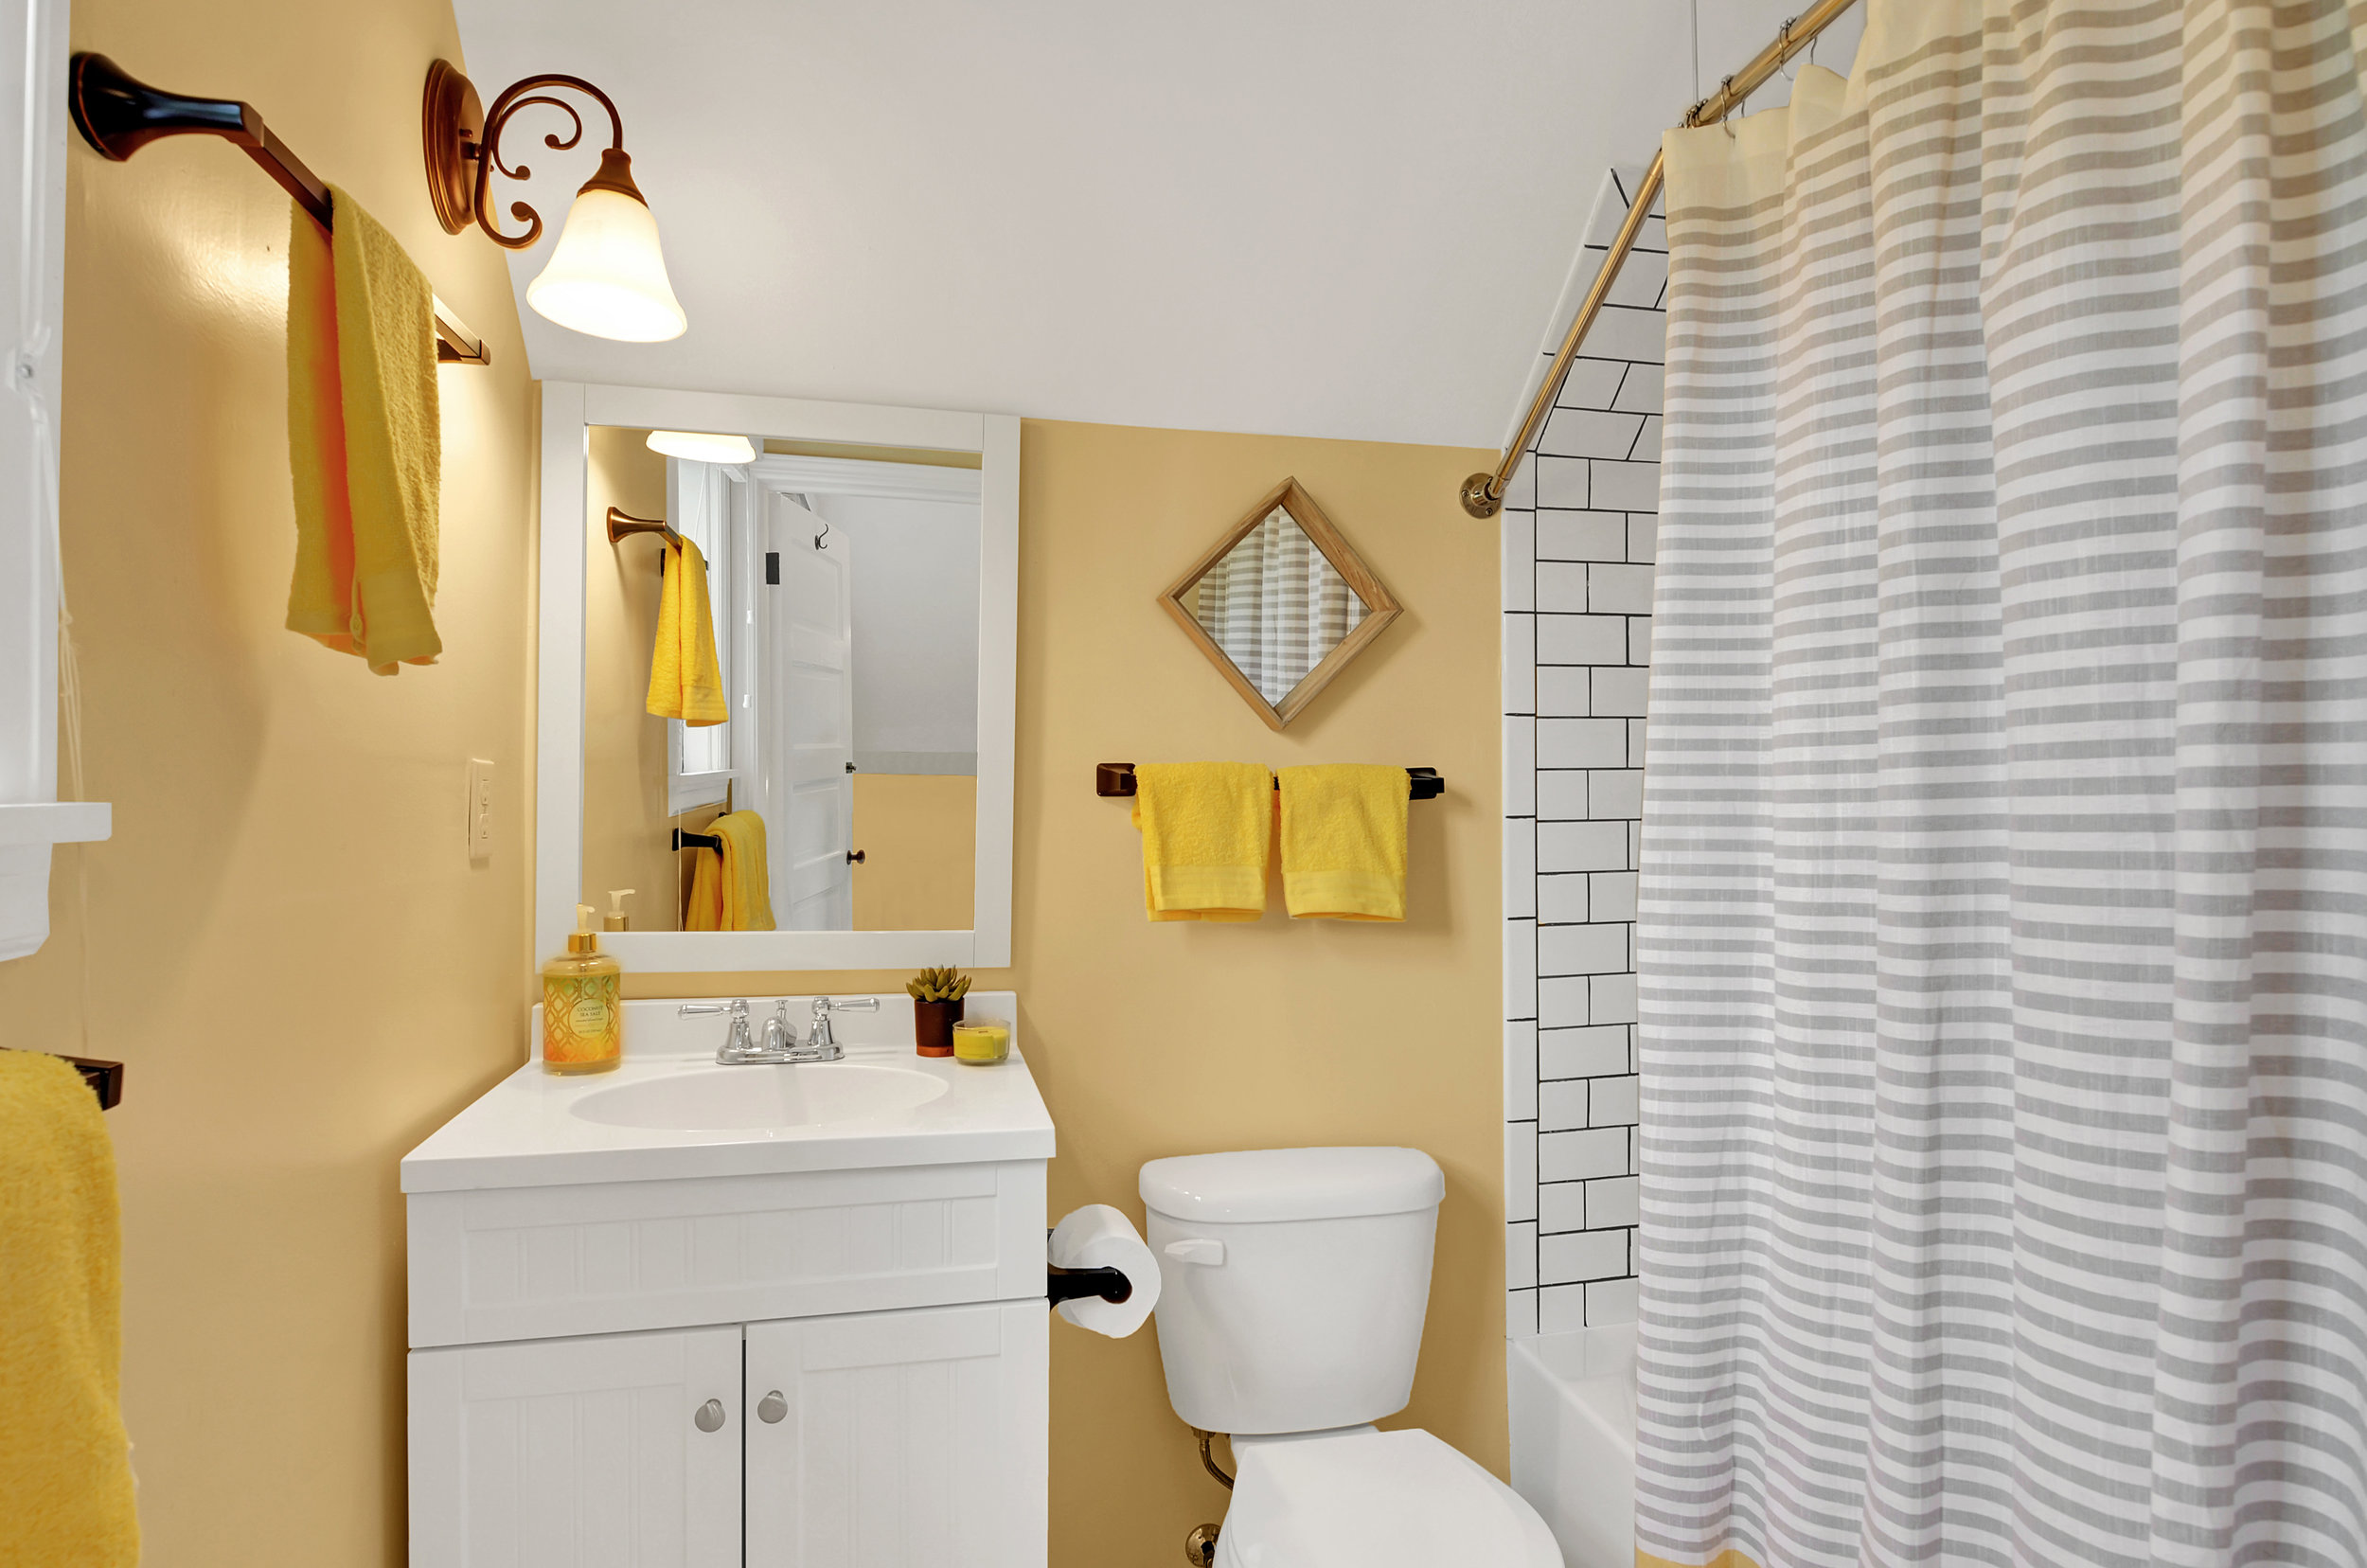 The 3rd full bath is located upstairs off the landing for easy access from the bedrooms. Find the same octagonal floor tile and white subway tile shower/tub area.